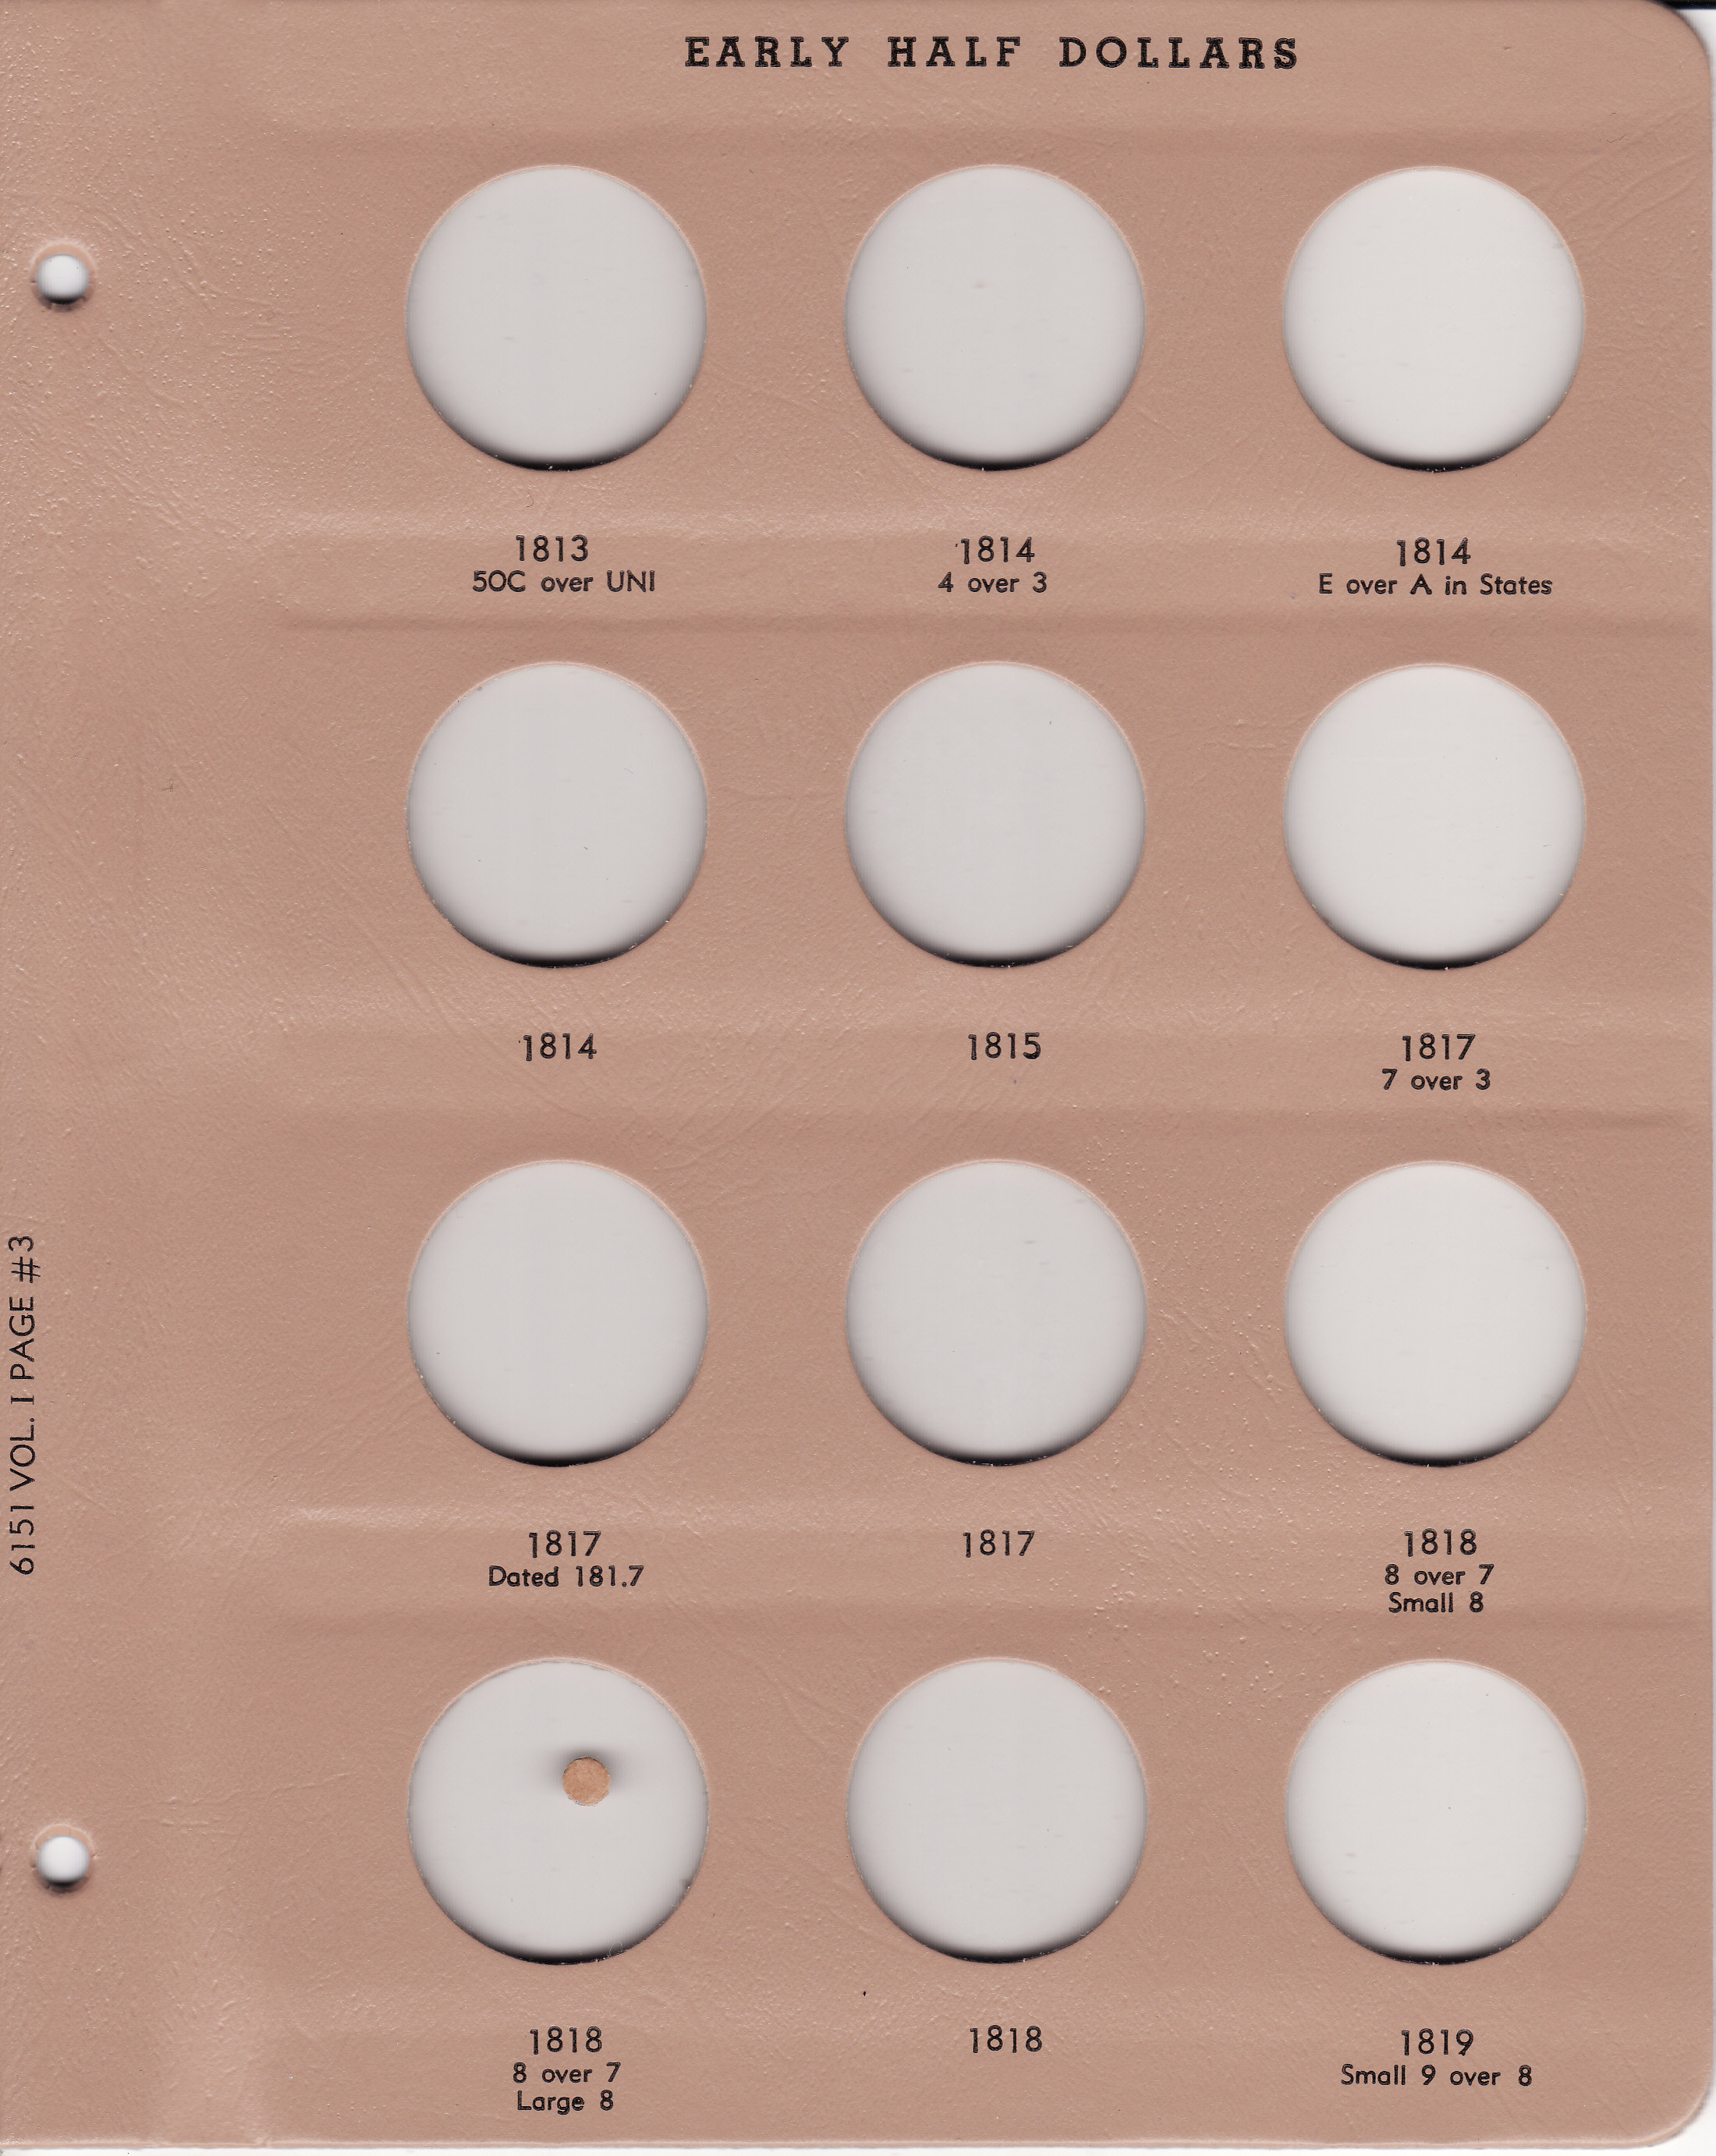 Dansco Replacement Page 7 7100 7102 3 Lincoln Memorial Cents 1989 to 2006 D New